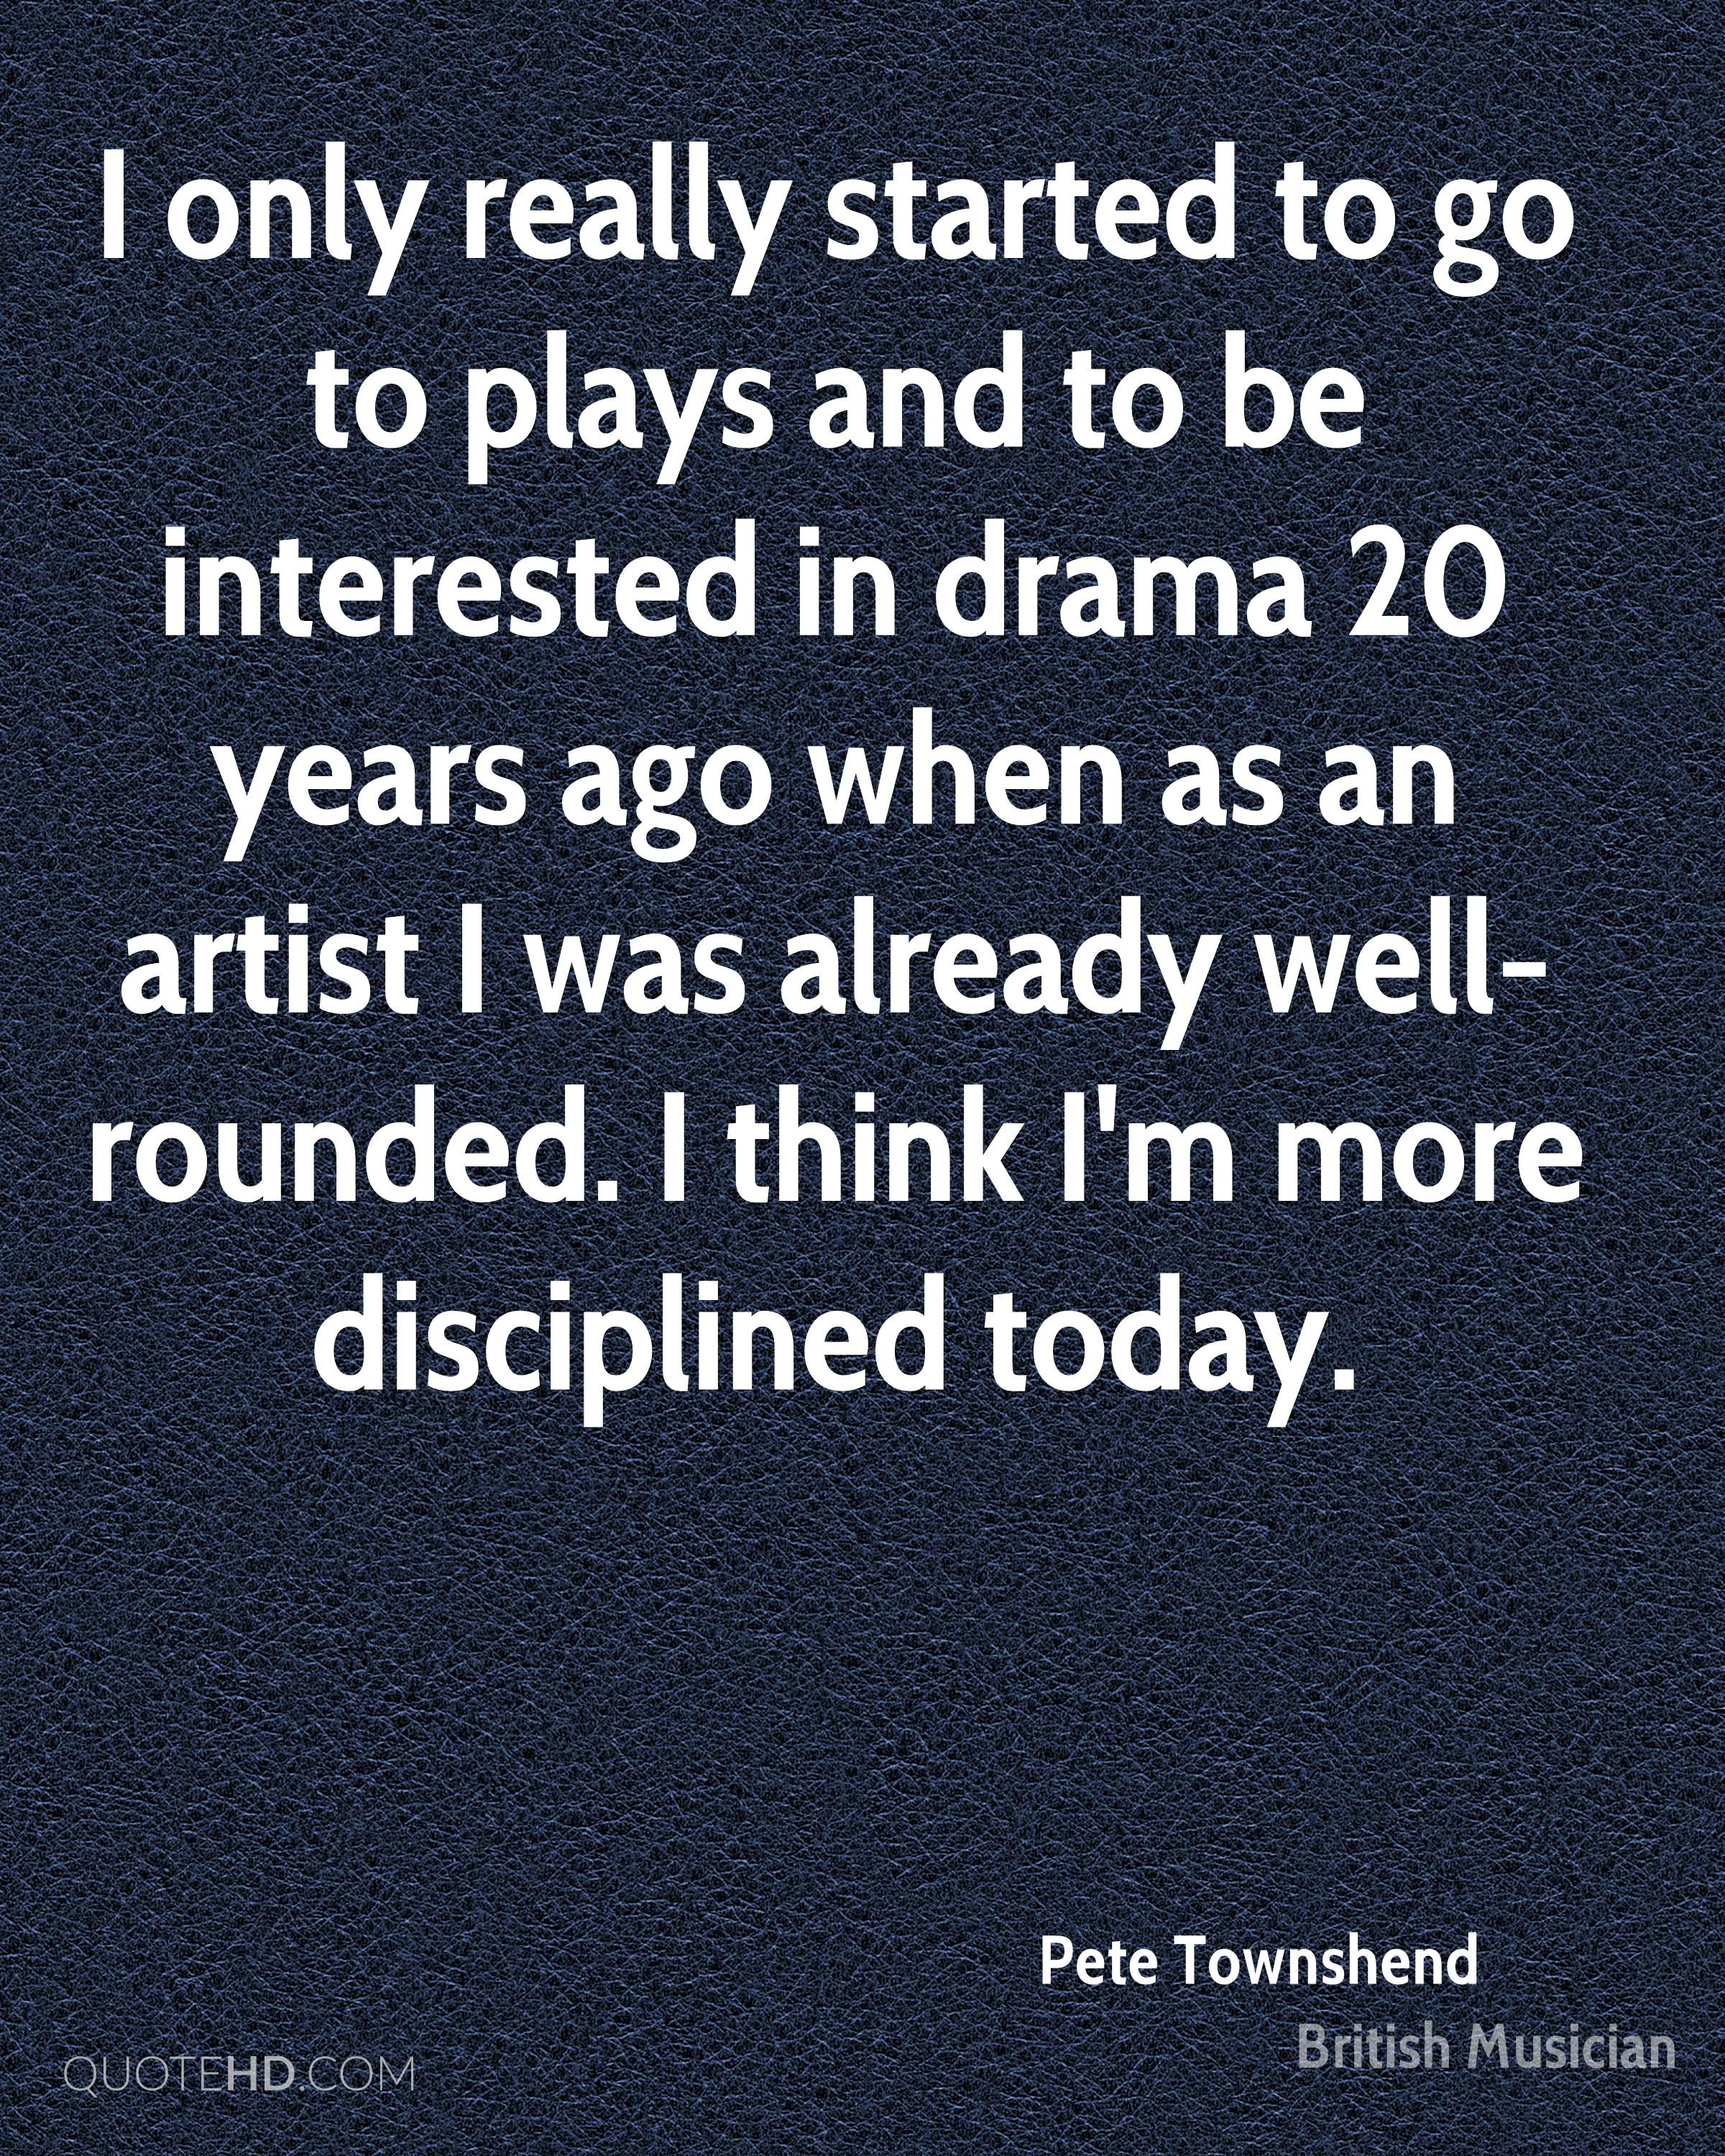 I only really started to go to plays and to be interested in drama 20 years ago when as an artist I was already well-rounded. I think I'm more disciplined today.